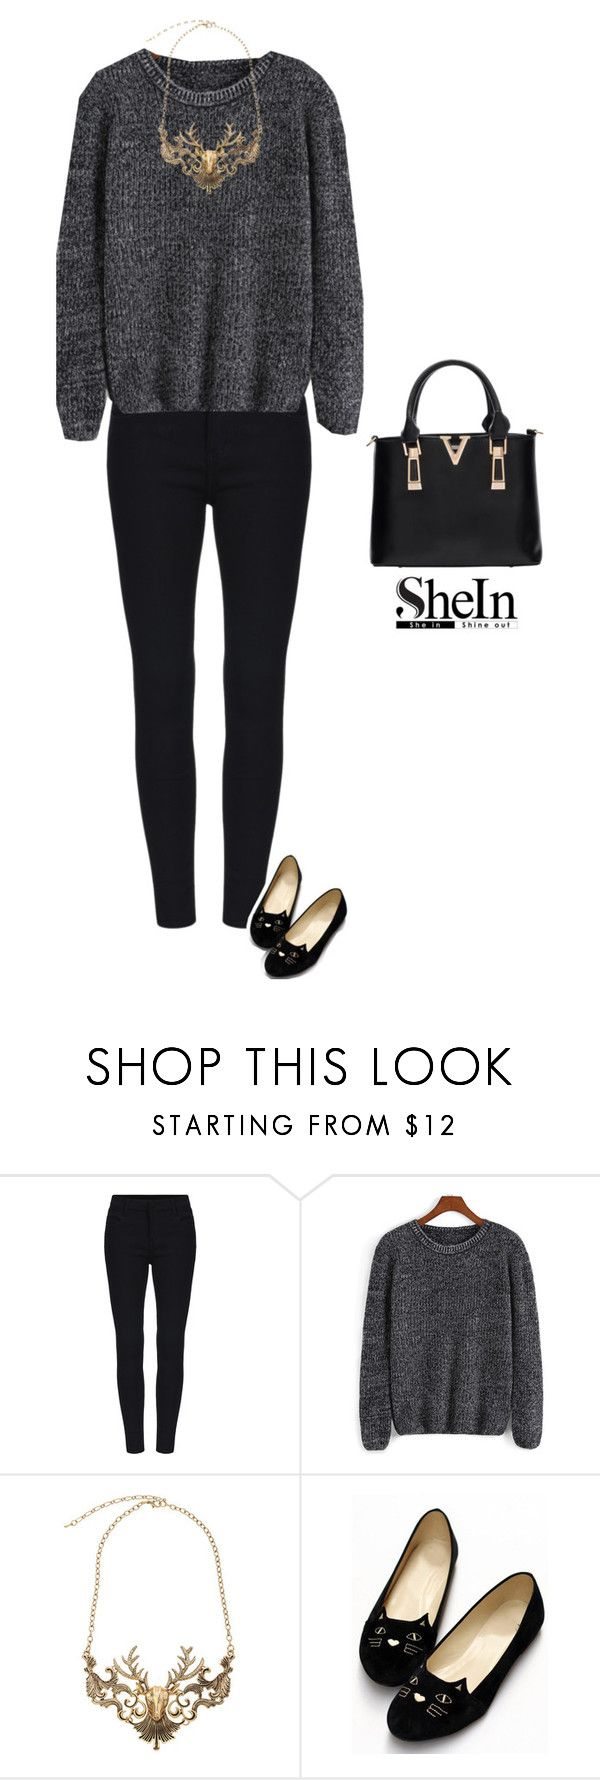 """""""Oh deer"""" by bondril ❤ liked on Polyvore featuring women's clothing, women, female, woman, misses, juniors and shein"""